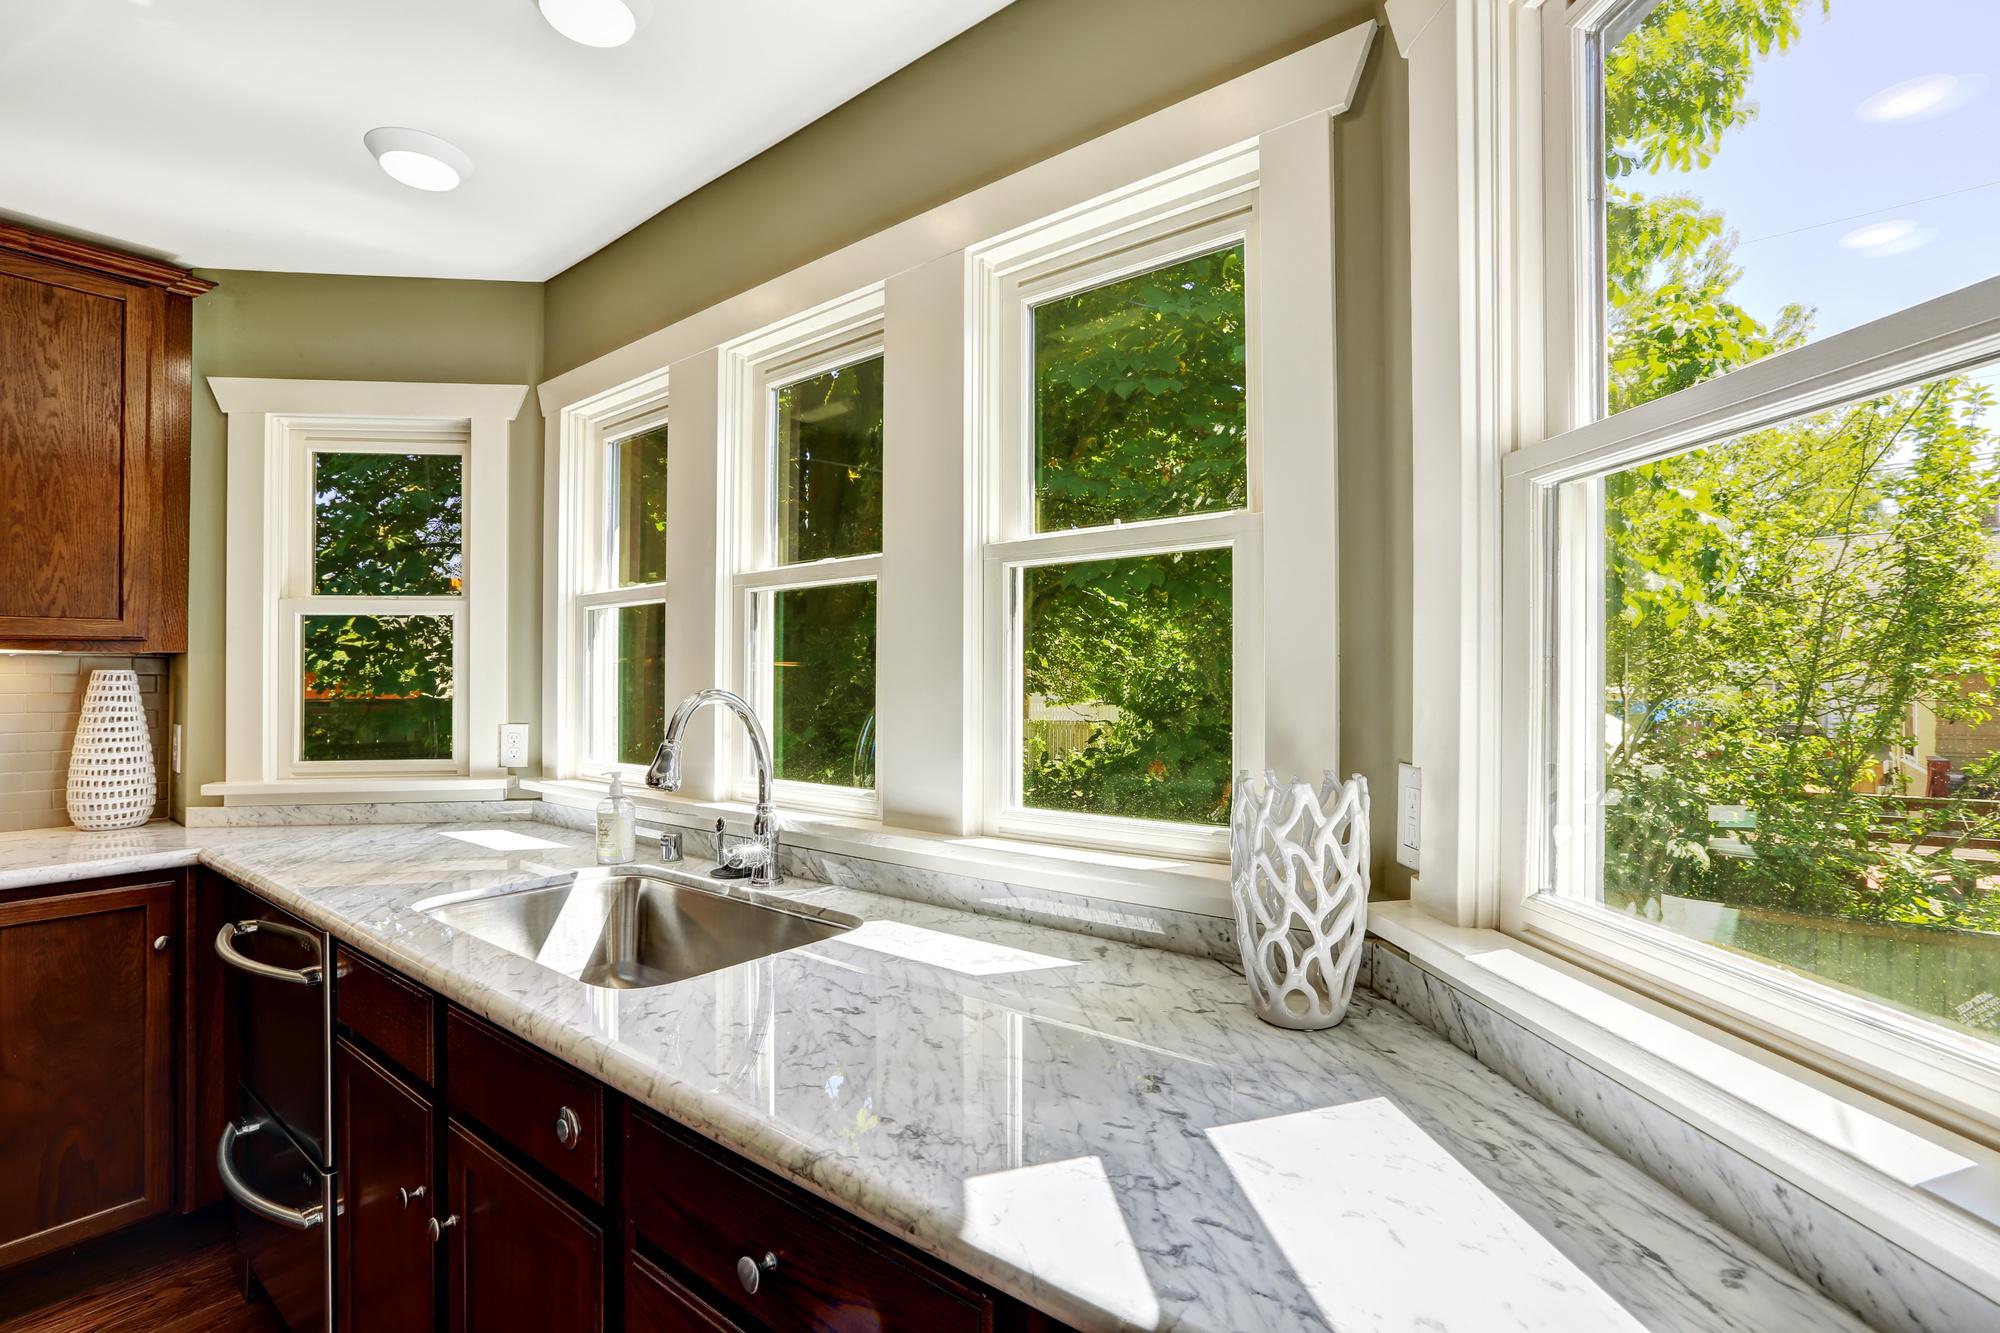 How to Remove Water Spots from Marble Countertop